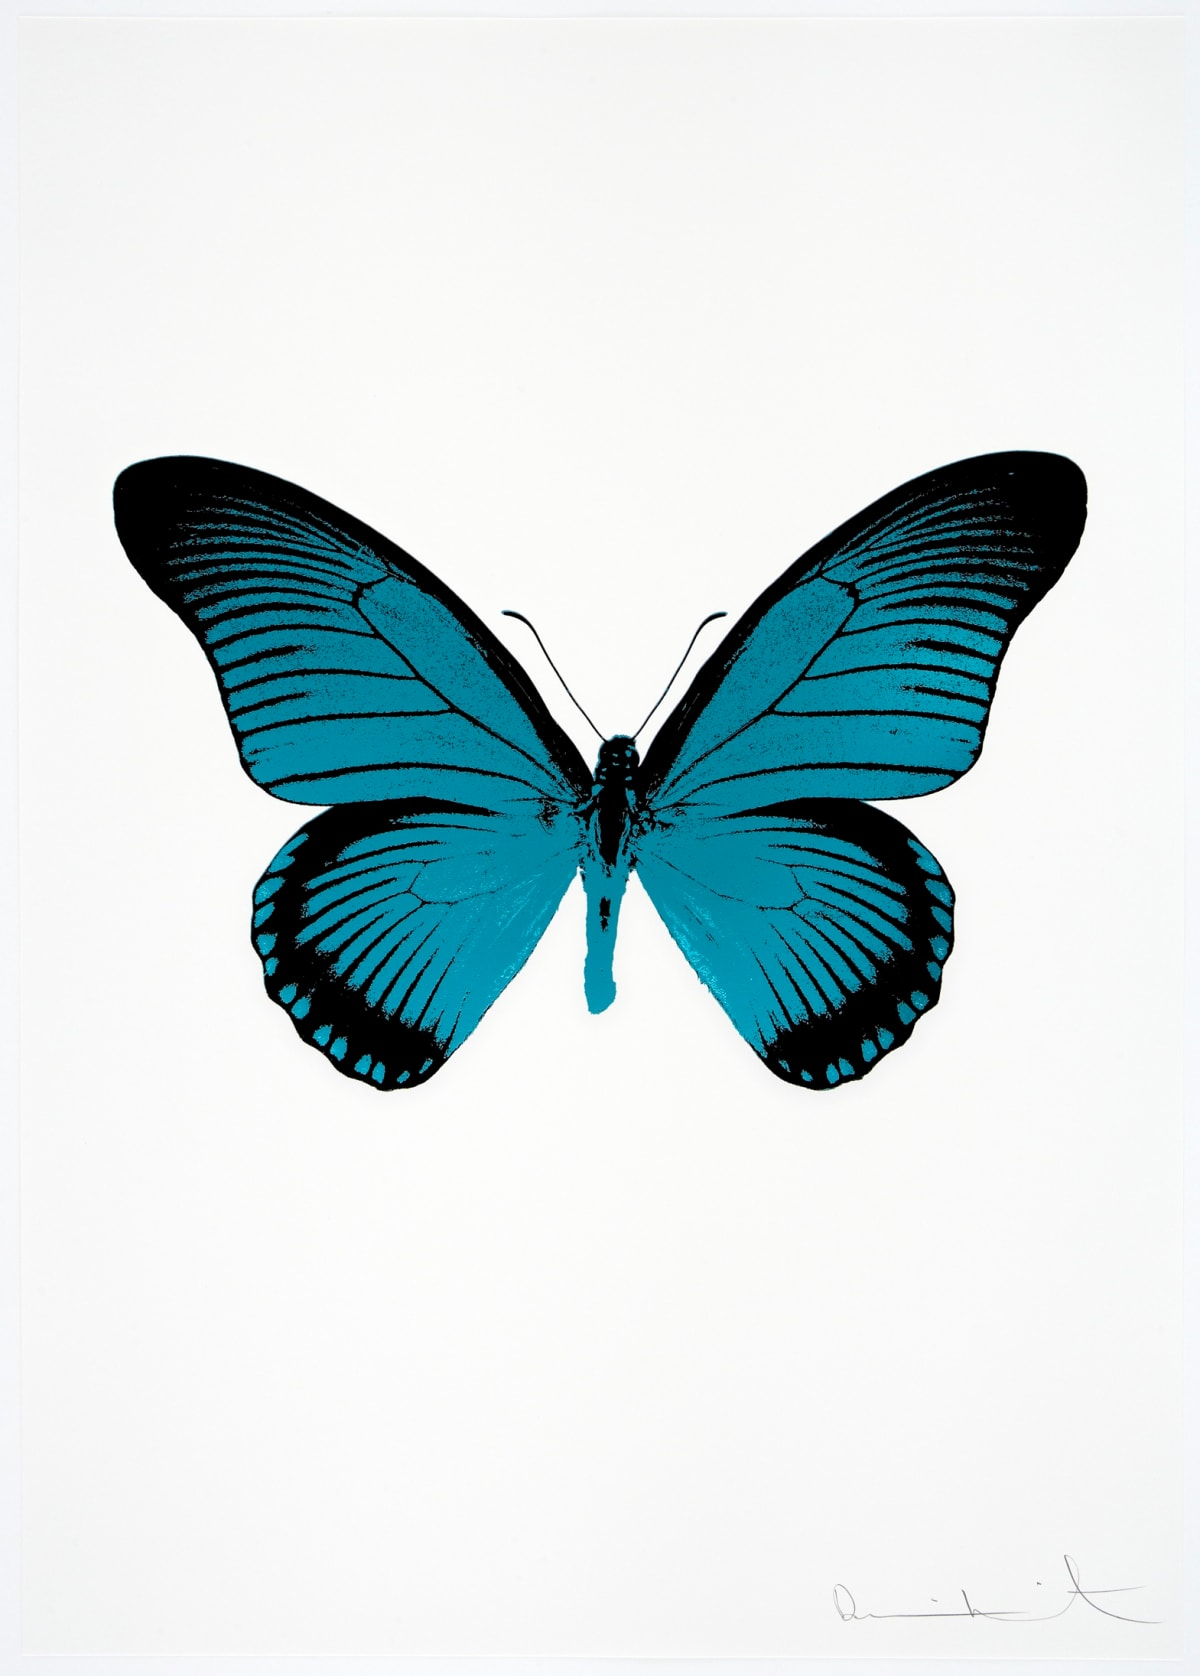 Damien Hirst The Souls IV - Topaz/Raven Black Damien Hirst butterfly foil print for sale Damien Hirst print for sale , 2010 2 colour foil block on 300gsm Arches 88 archival paper. Signed and numbered. Published by Paul Stolper and Other Criteria 72 x 51cm OC8045 / 1418-68 Edition of 15